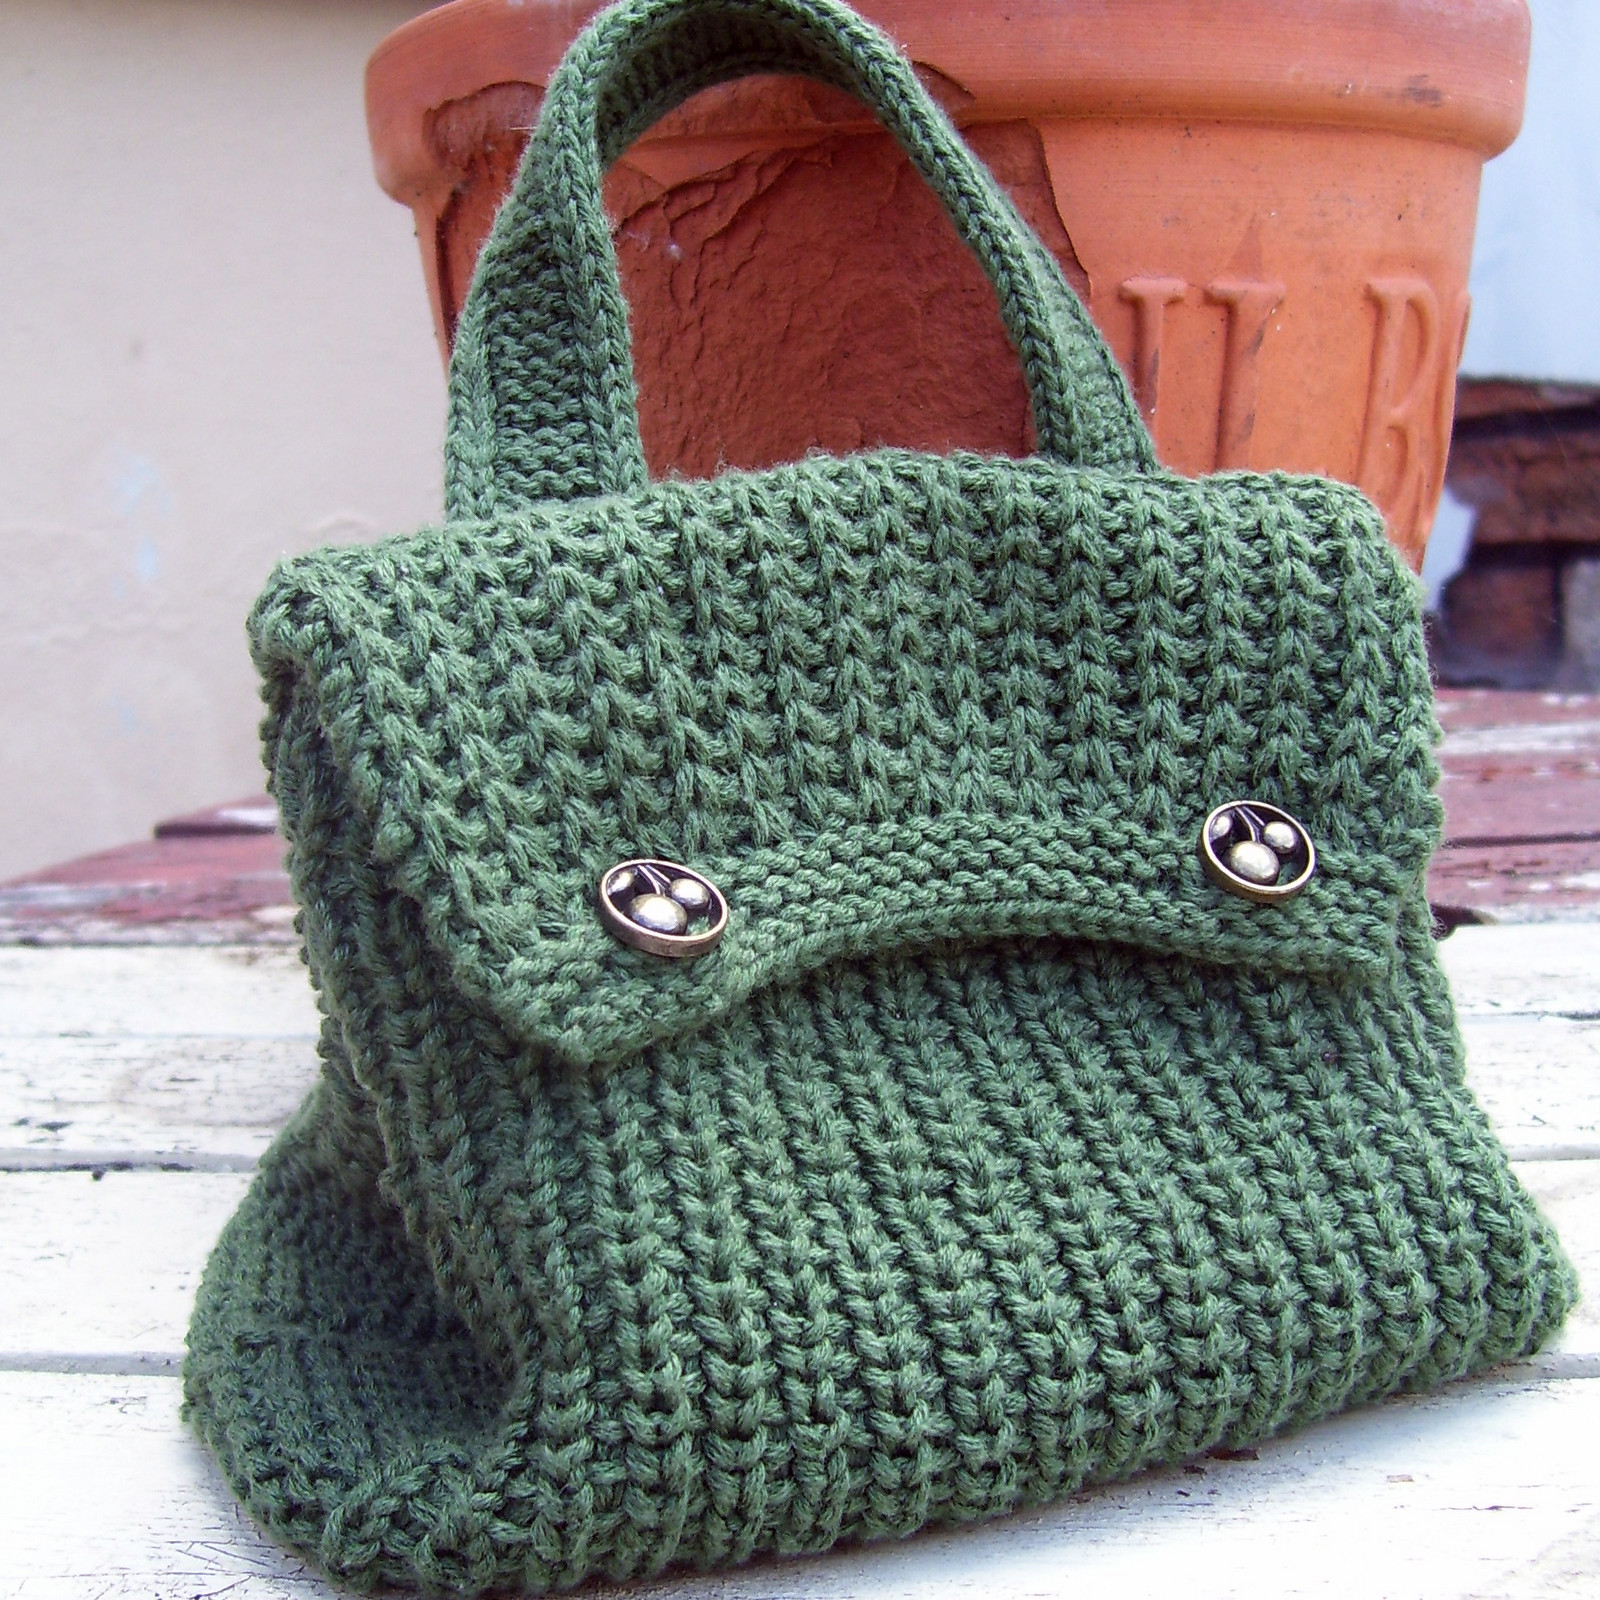 New Purse Patterns to Crochet Knit – Easy Crochet Patterns Knitting and Crochet Patterns Of Adorable 46 Ideas Knitting and Crochet Patterns